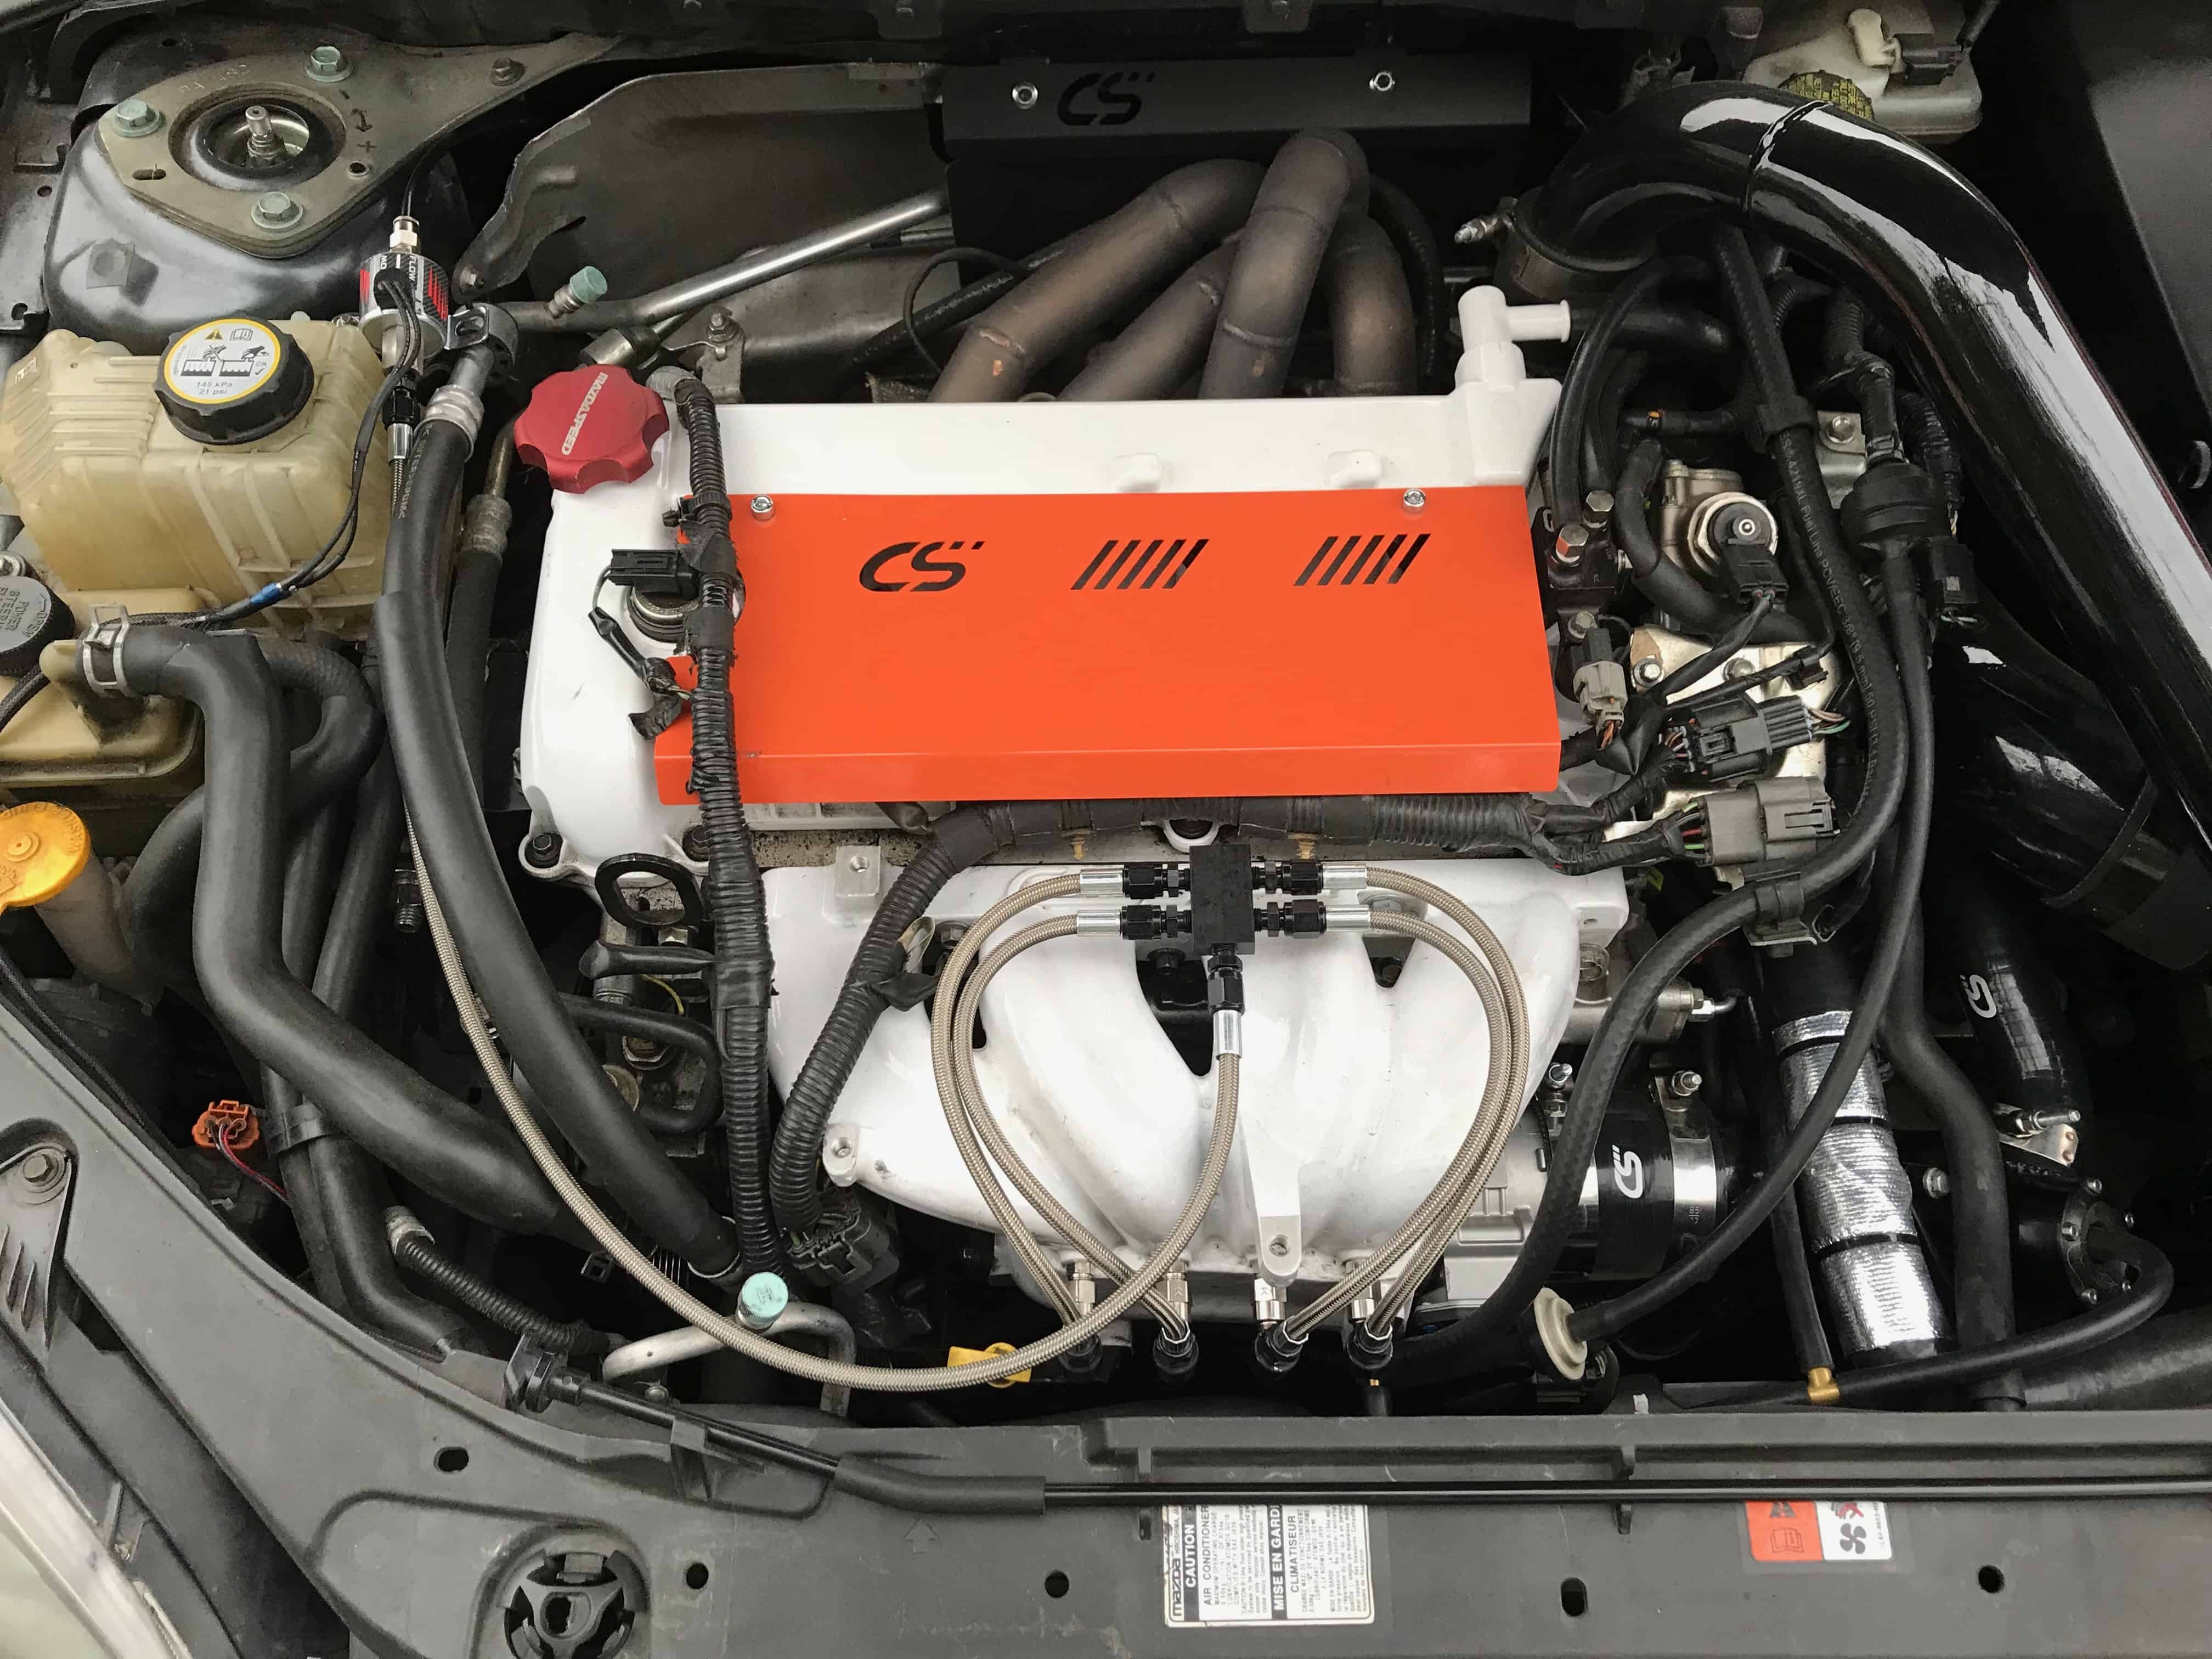 Auxiliary Methanol Fueling for Your Mazdaspeed